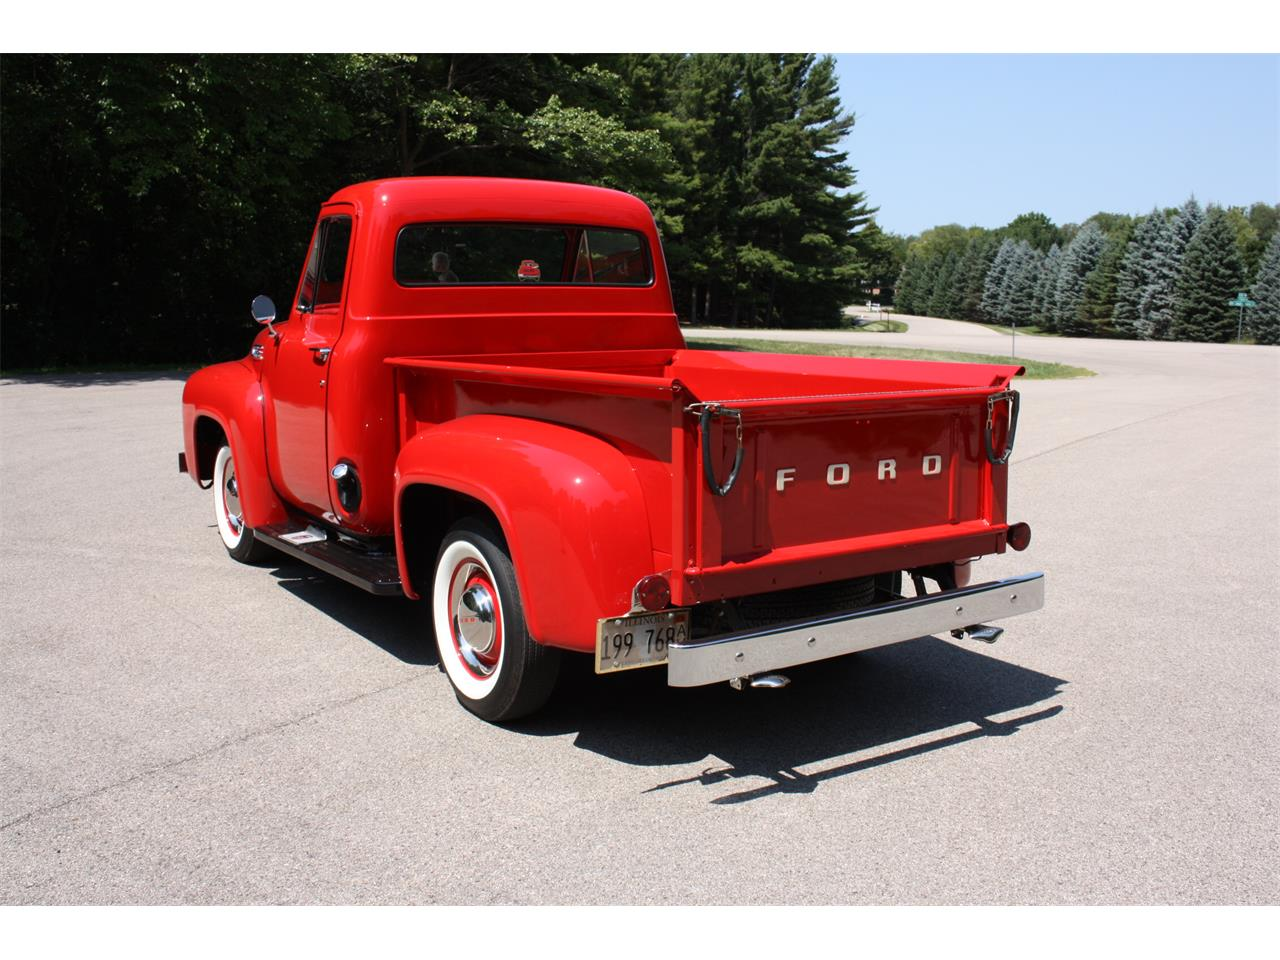 Large Picture of 1953 Ford F100 located in Woodstock Illinois Auction Vehicle - OD67